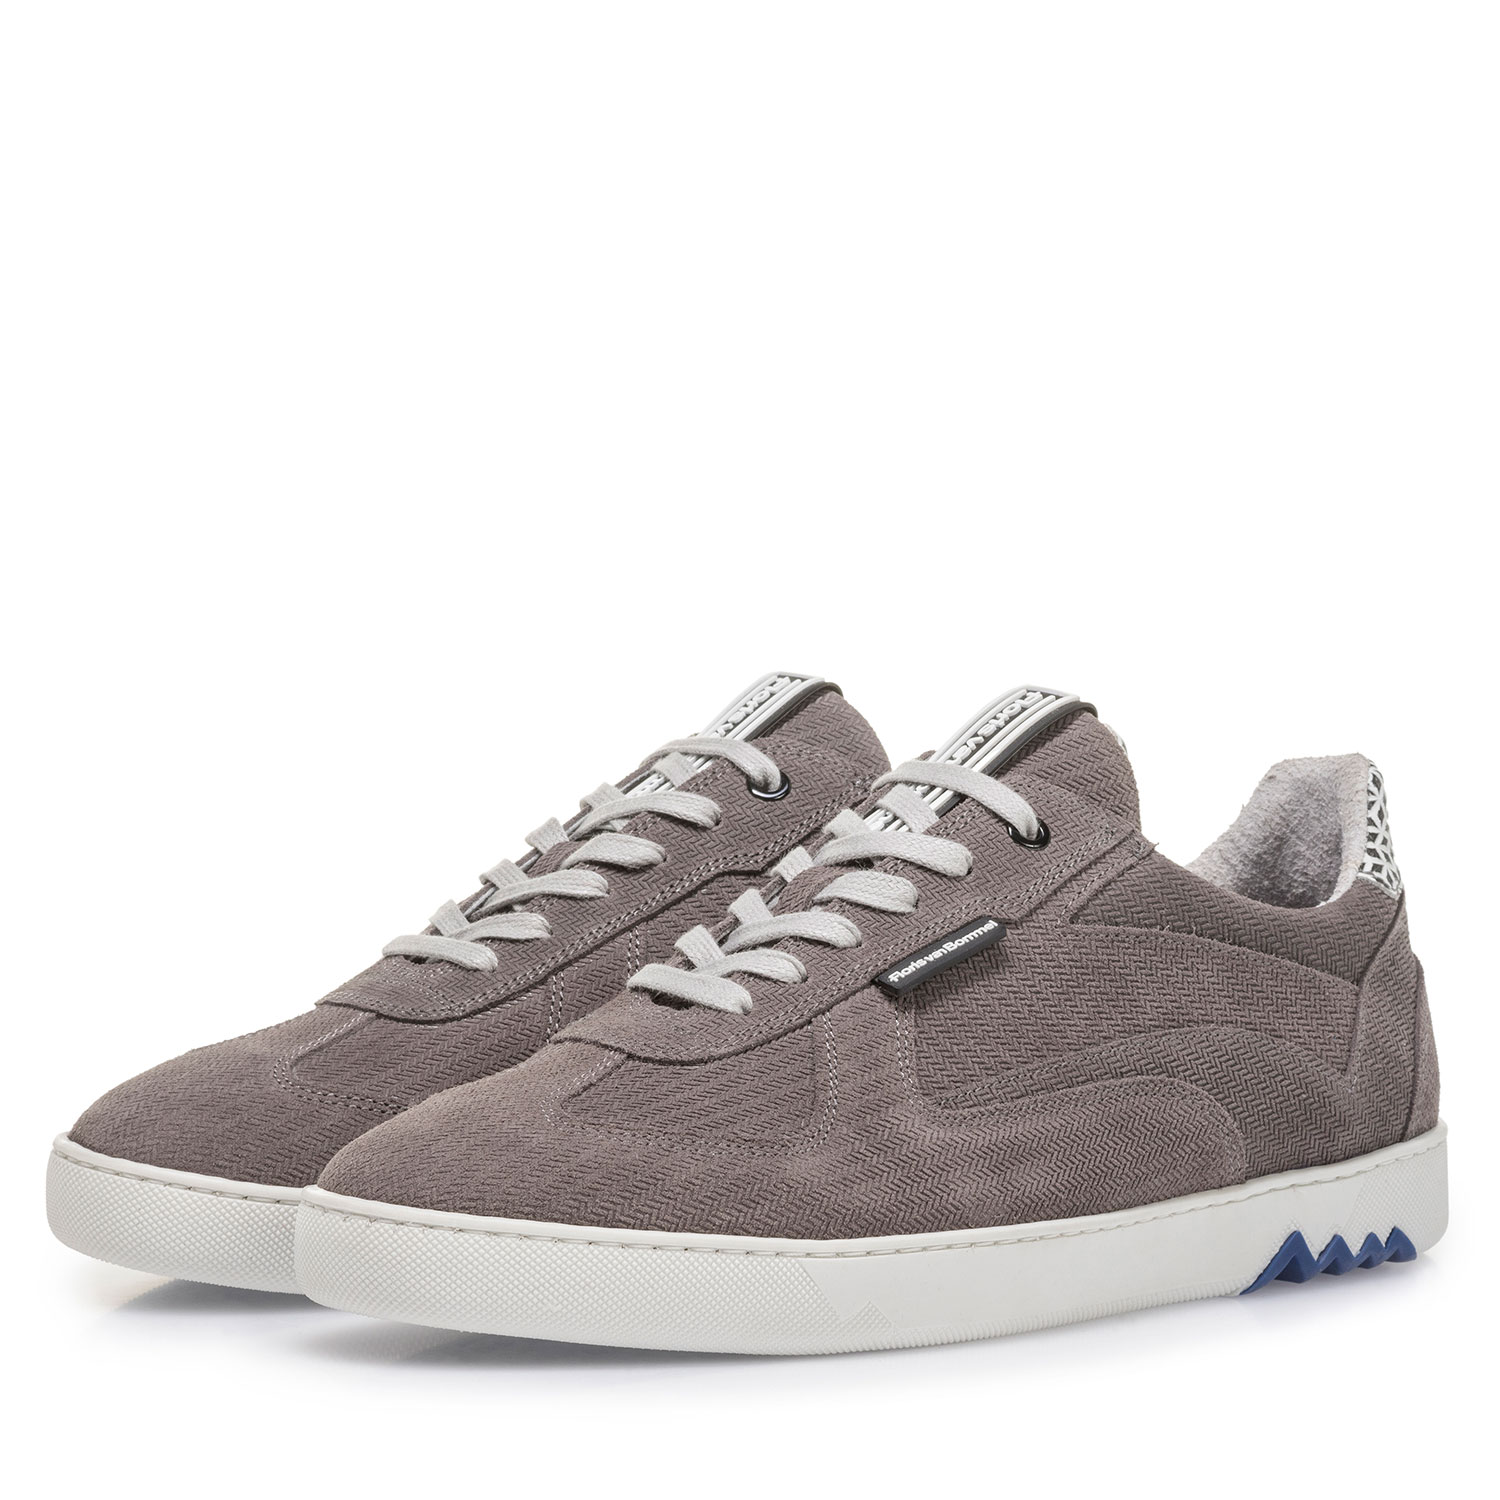 16342/23 - Grey suede leather sneaker with print